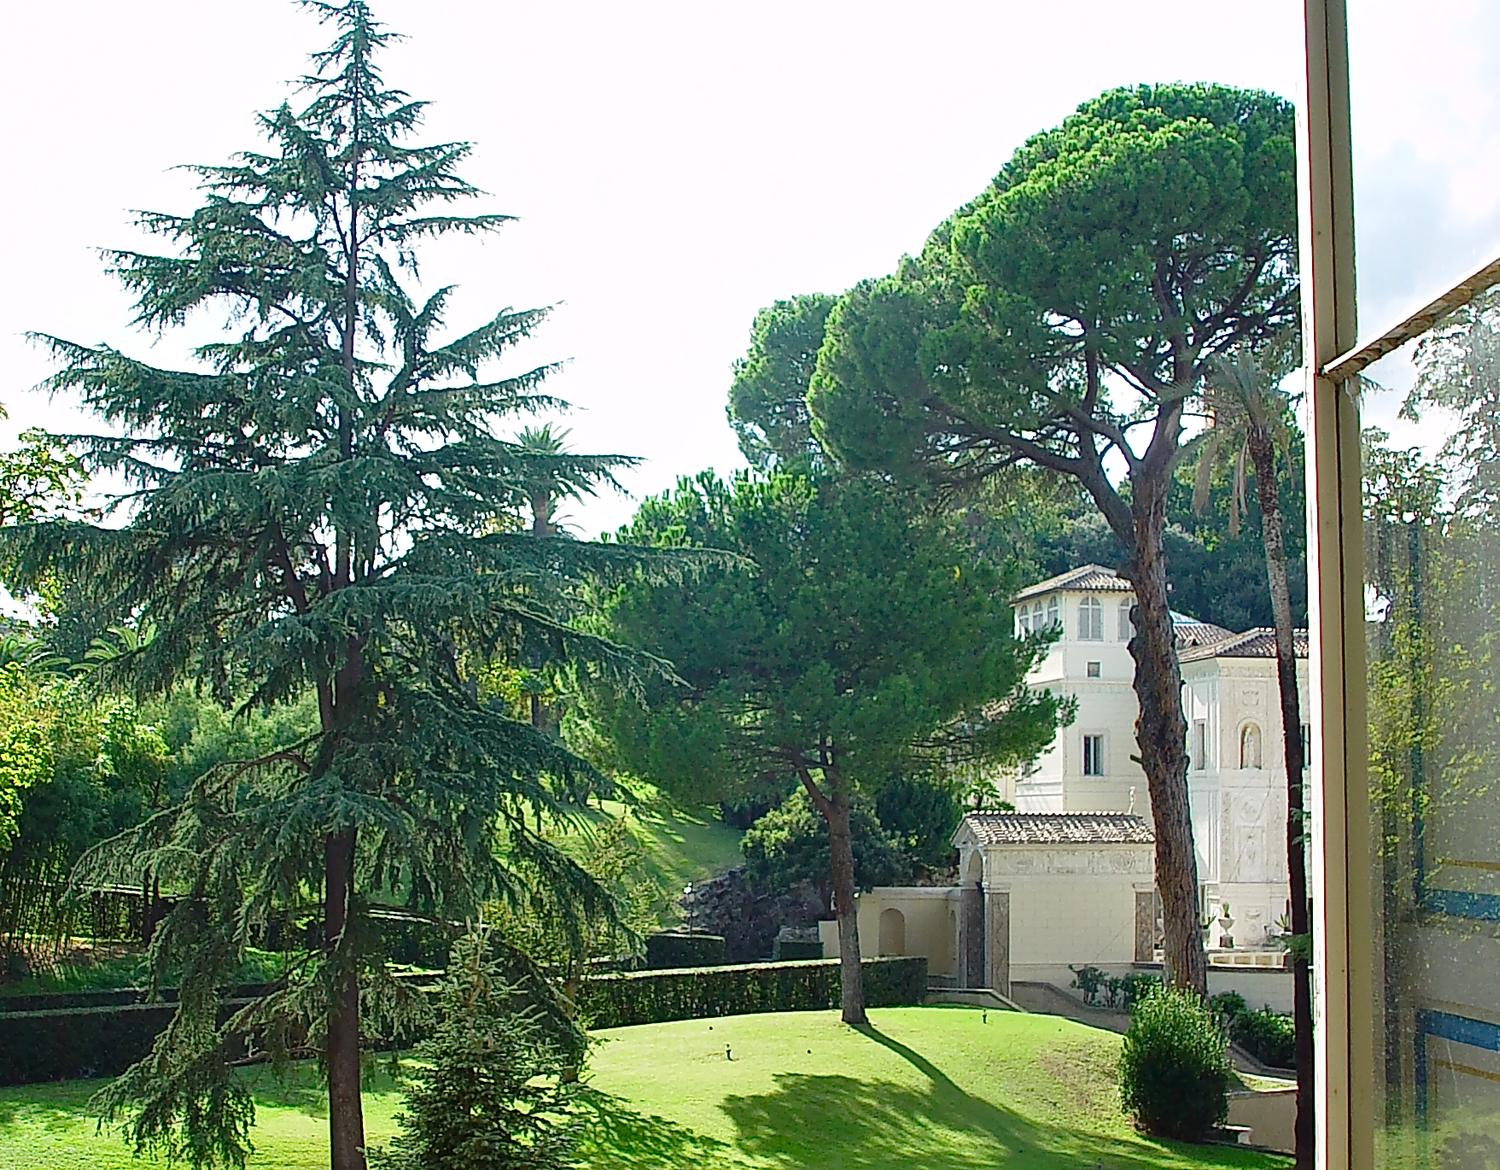 - View from a Vatican window. The stone pine tree is on the right. Note the distinctive umbrella shape. - - Italian Stone Pine Tree - Umbrella Pine - Pinus Pinea - - - art  - photography - by Tony Karp